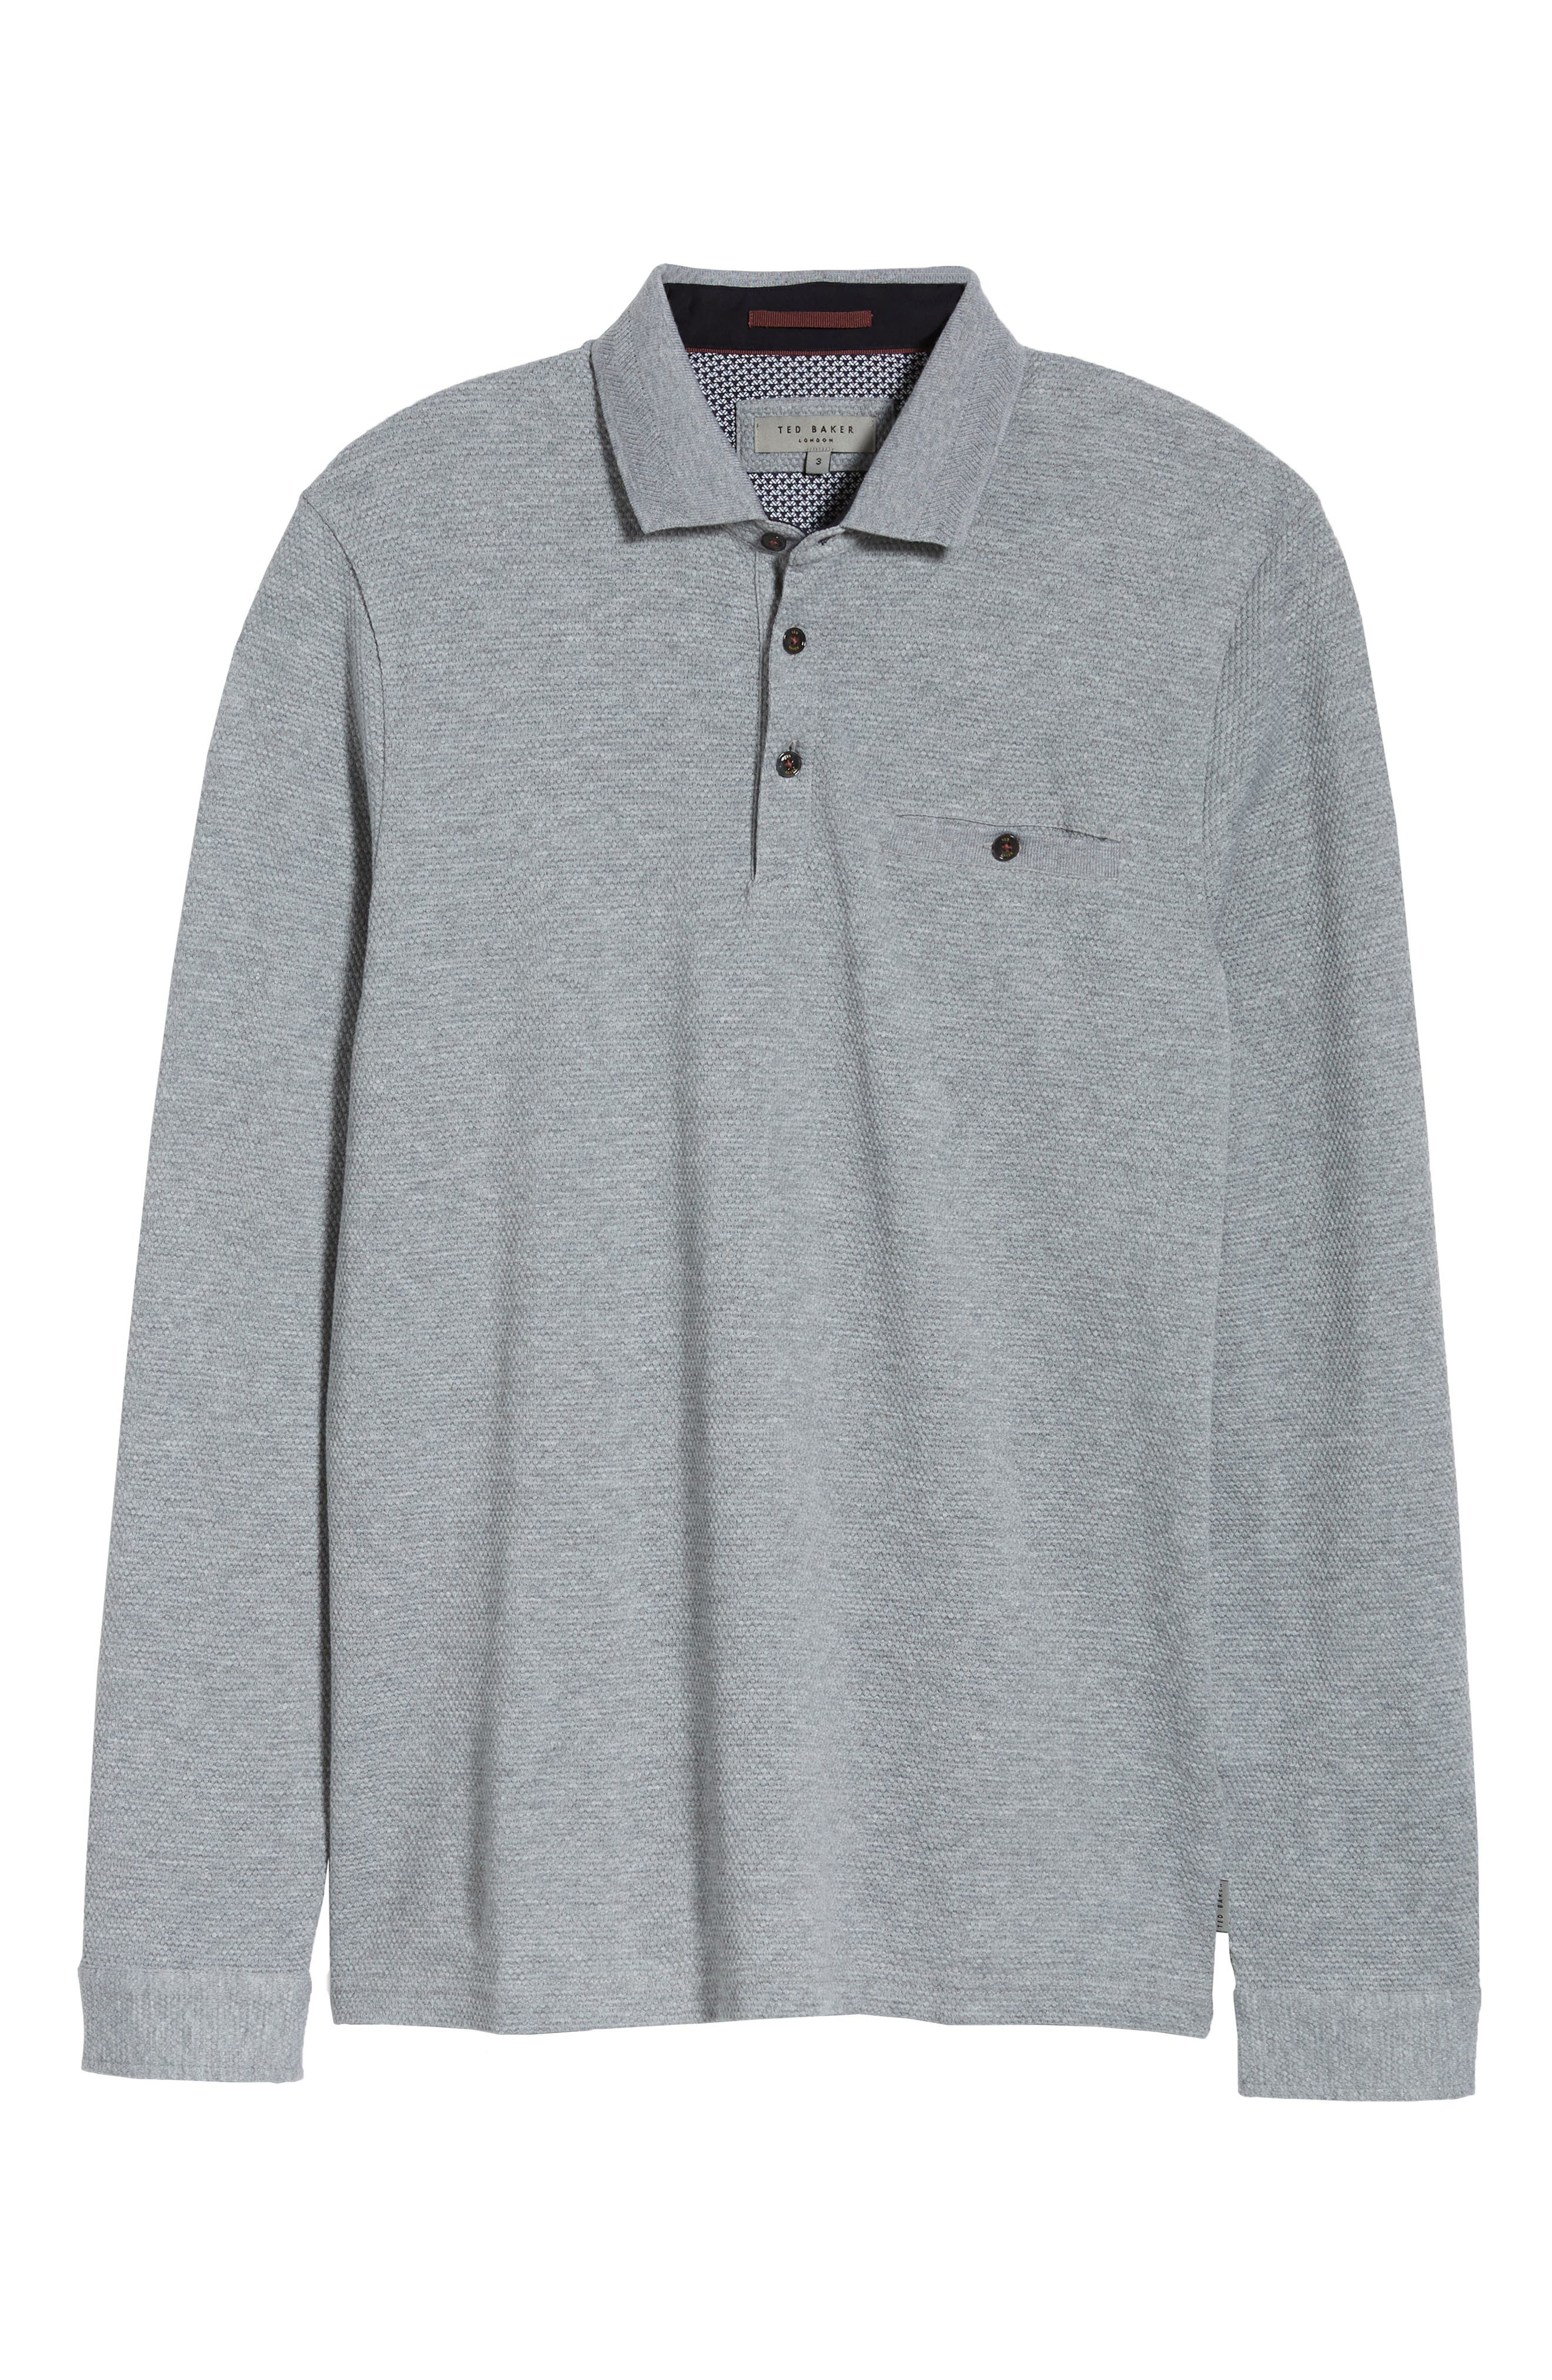 Scooby Trim Fit Long Sleeve Polo Shirt,                             Alternate thumbnail 6, color,                             Grey Marl